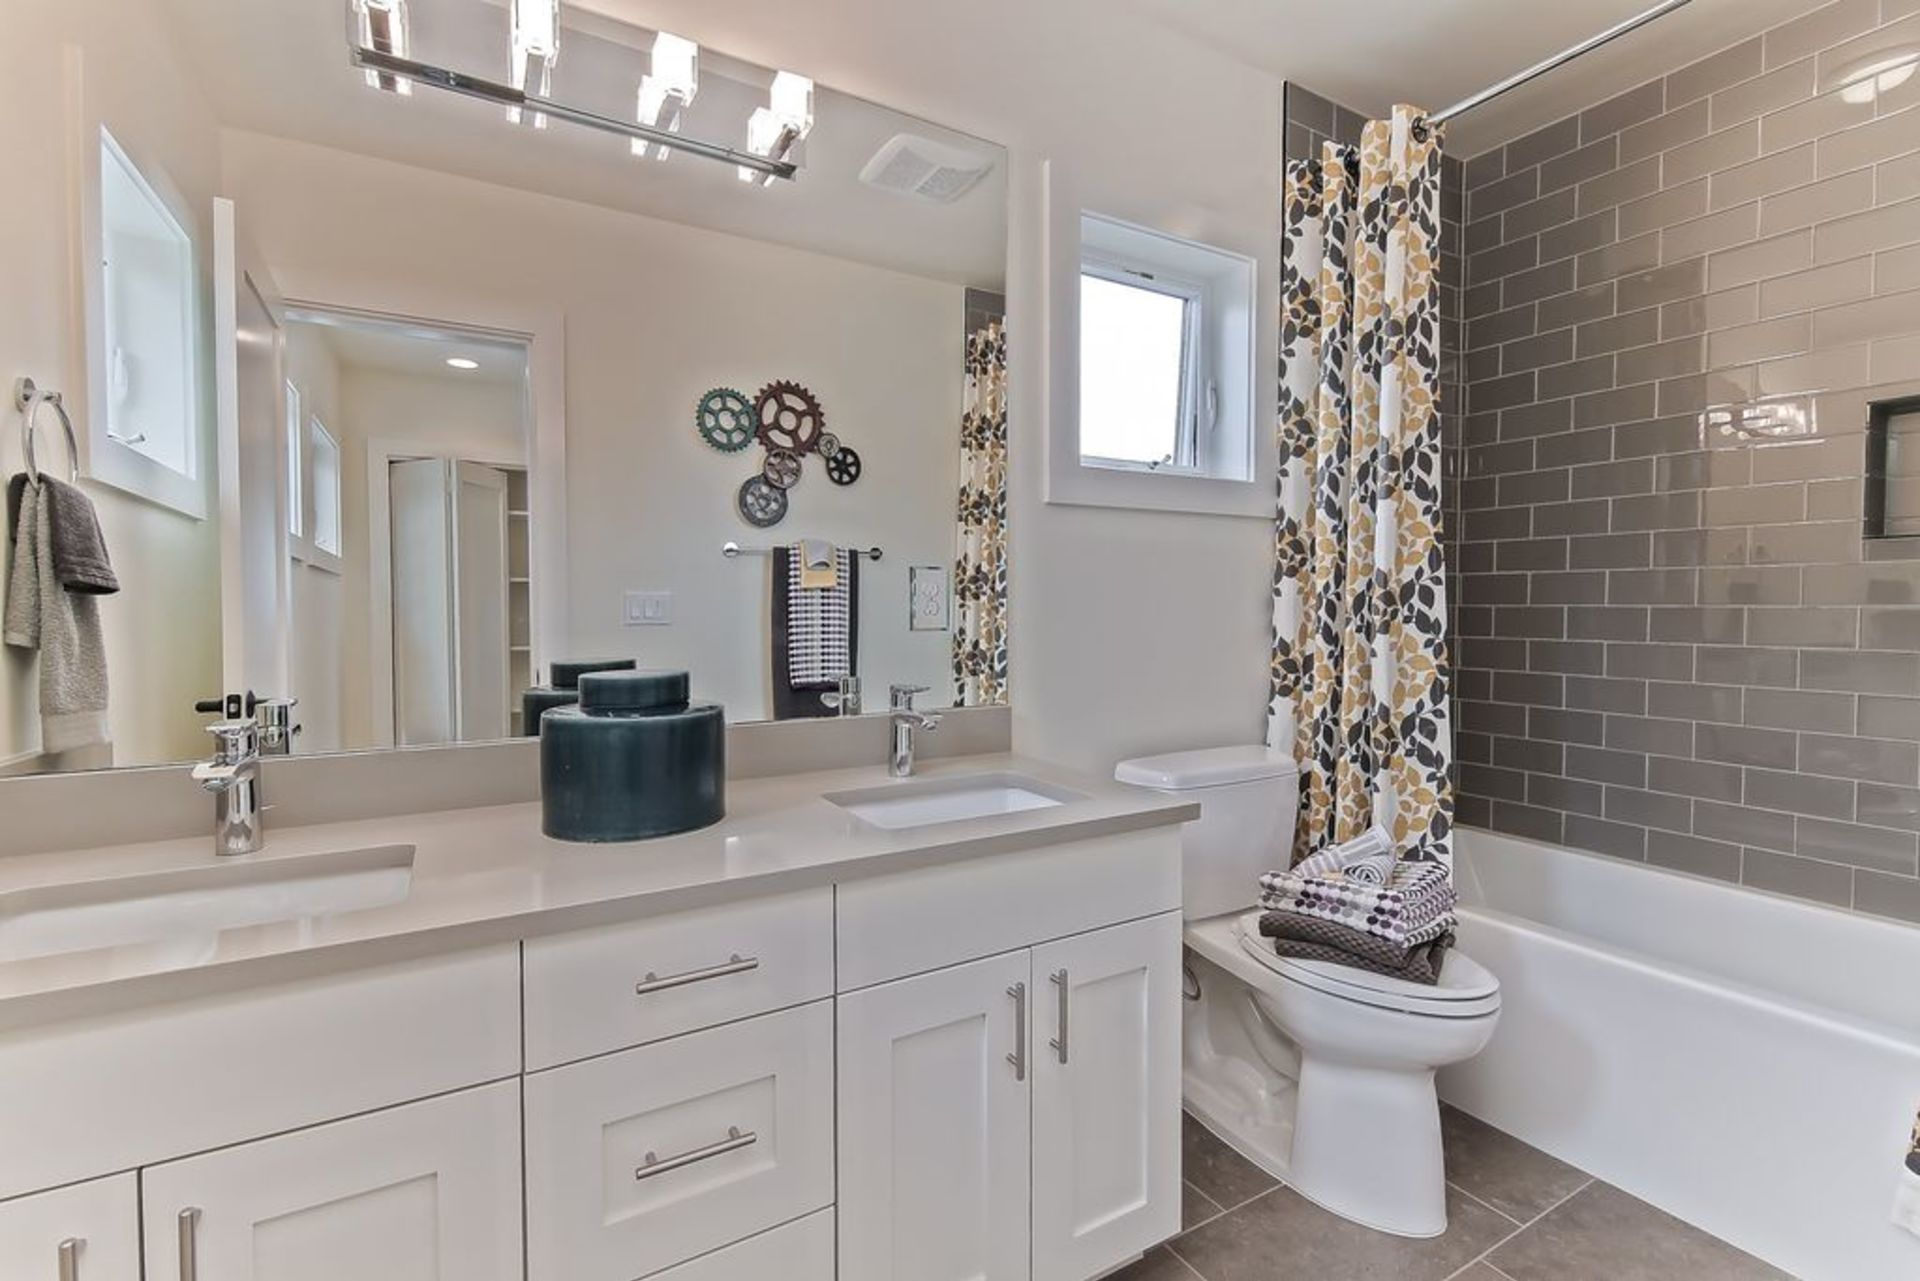 5 Home Renovation Choices That Can Cut Your Remodeling Budget